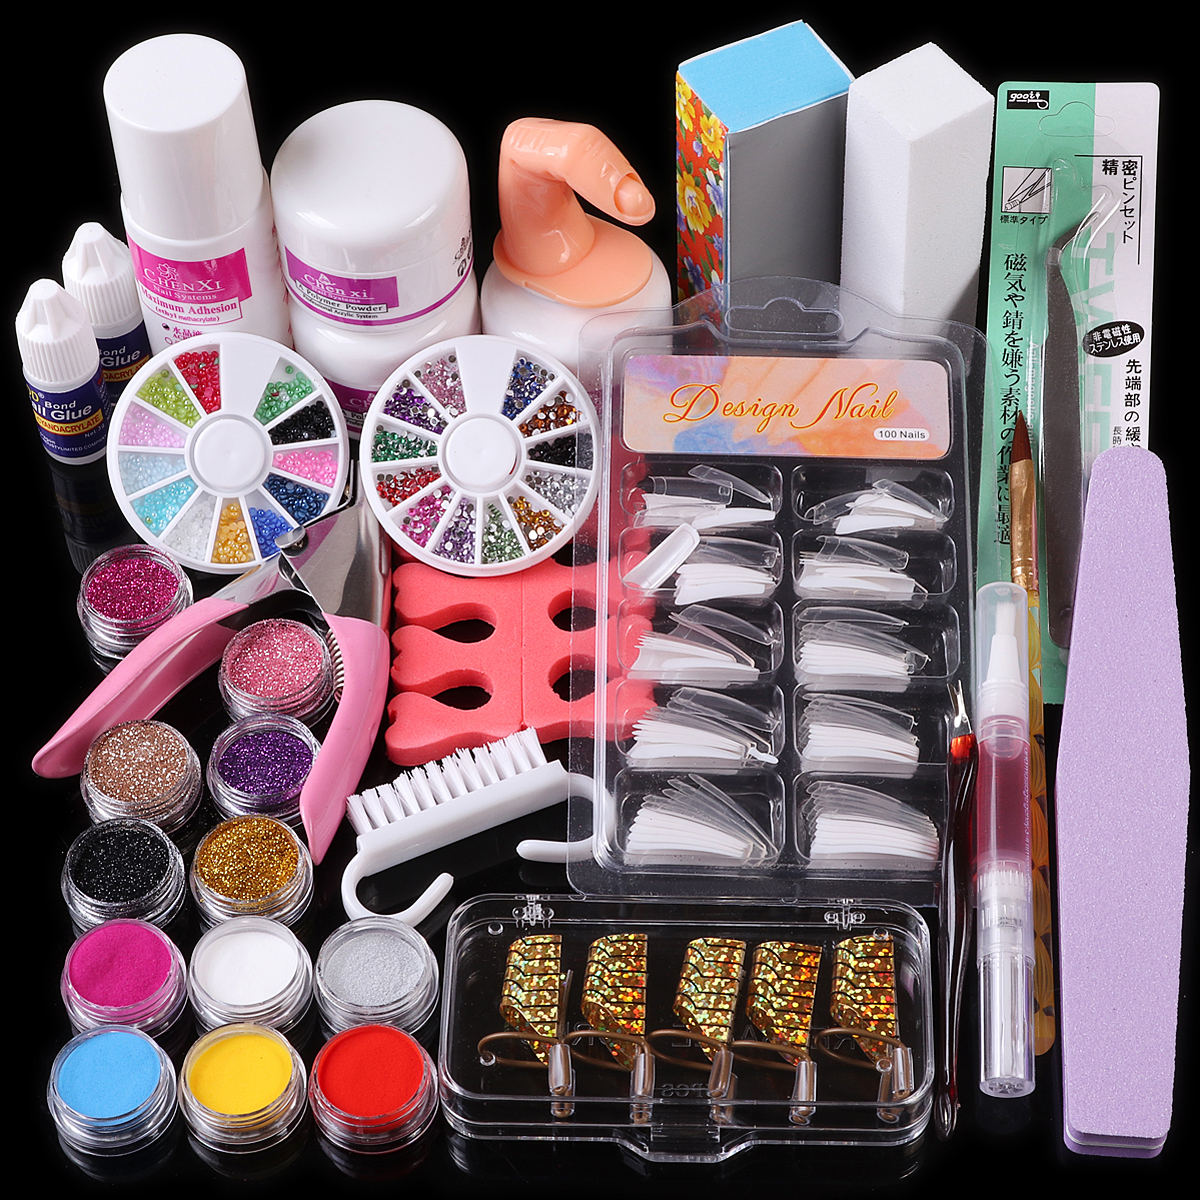 Nail Art Acrylic Powder Liquid Glue Brush Guide Form Tweezer Rhinestones Glitter False Tips Buffer Files Manicure Tools Kit Set 48 bottles lot 5 designs mixed diy nail art decoration kit rhinestones beads sequins paillettes nail glitter powder acrylic tips